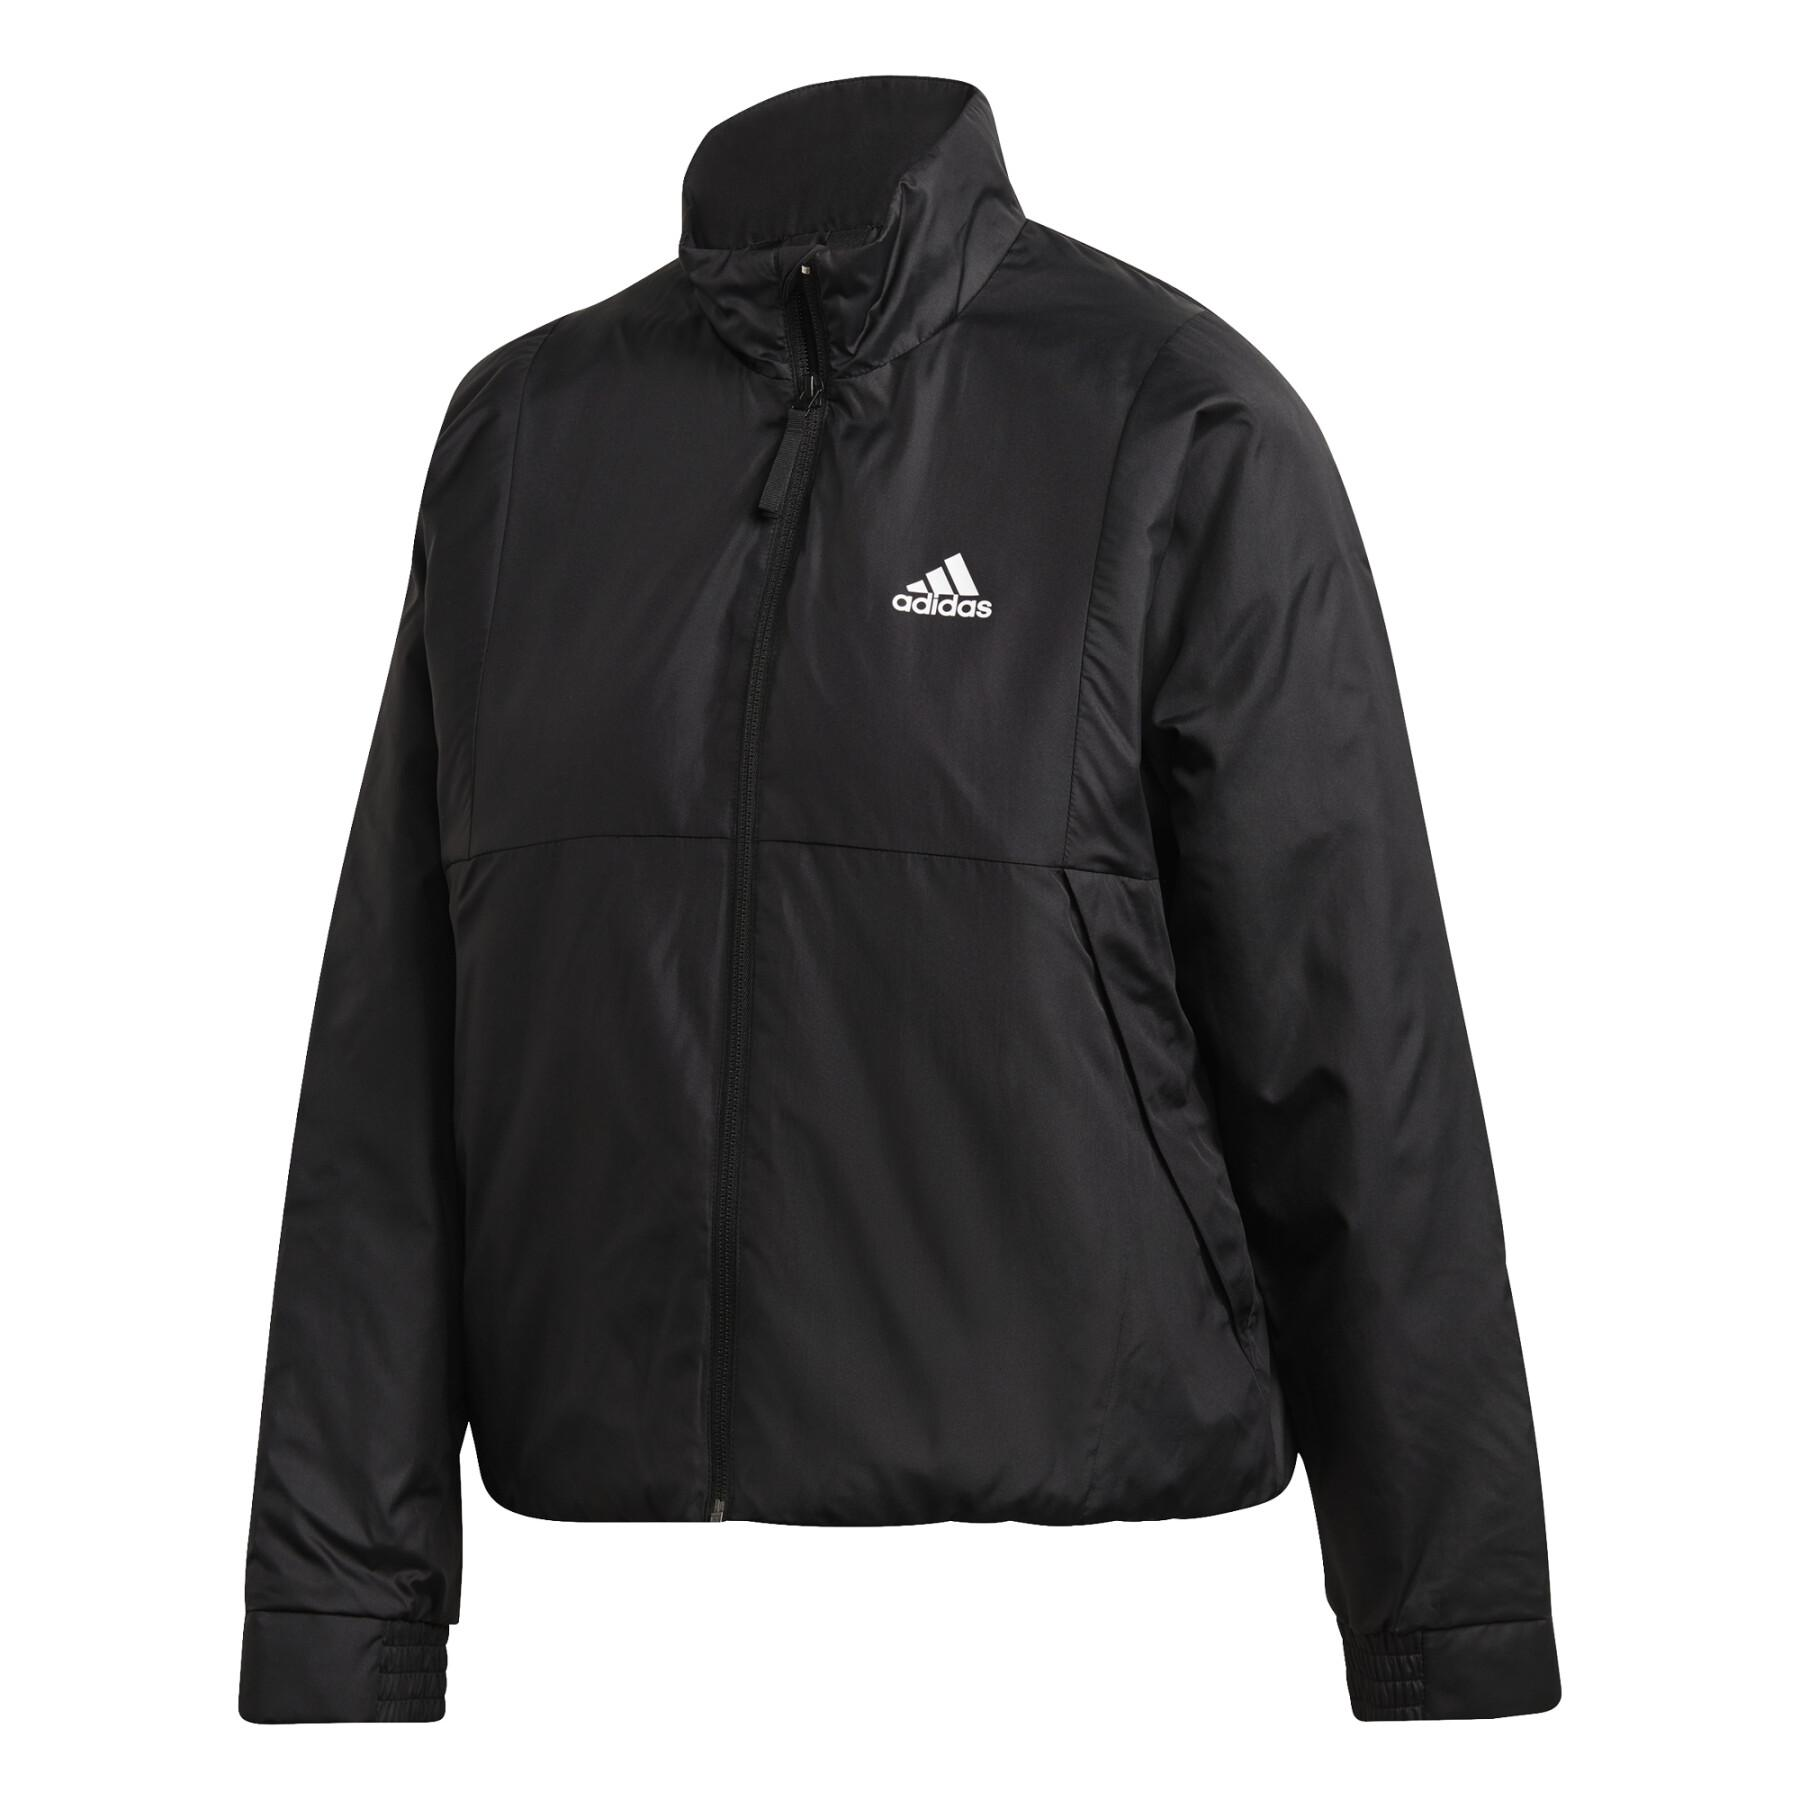 Adidas Back to Sport Lite Insulated Women's Jacket